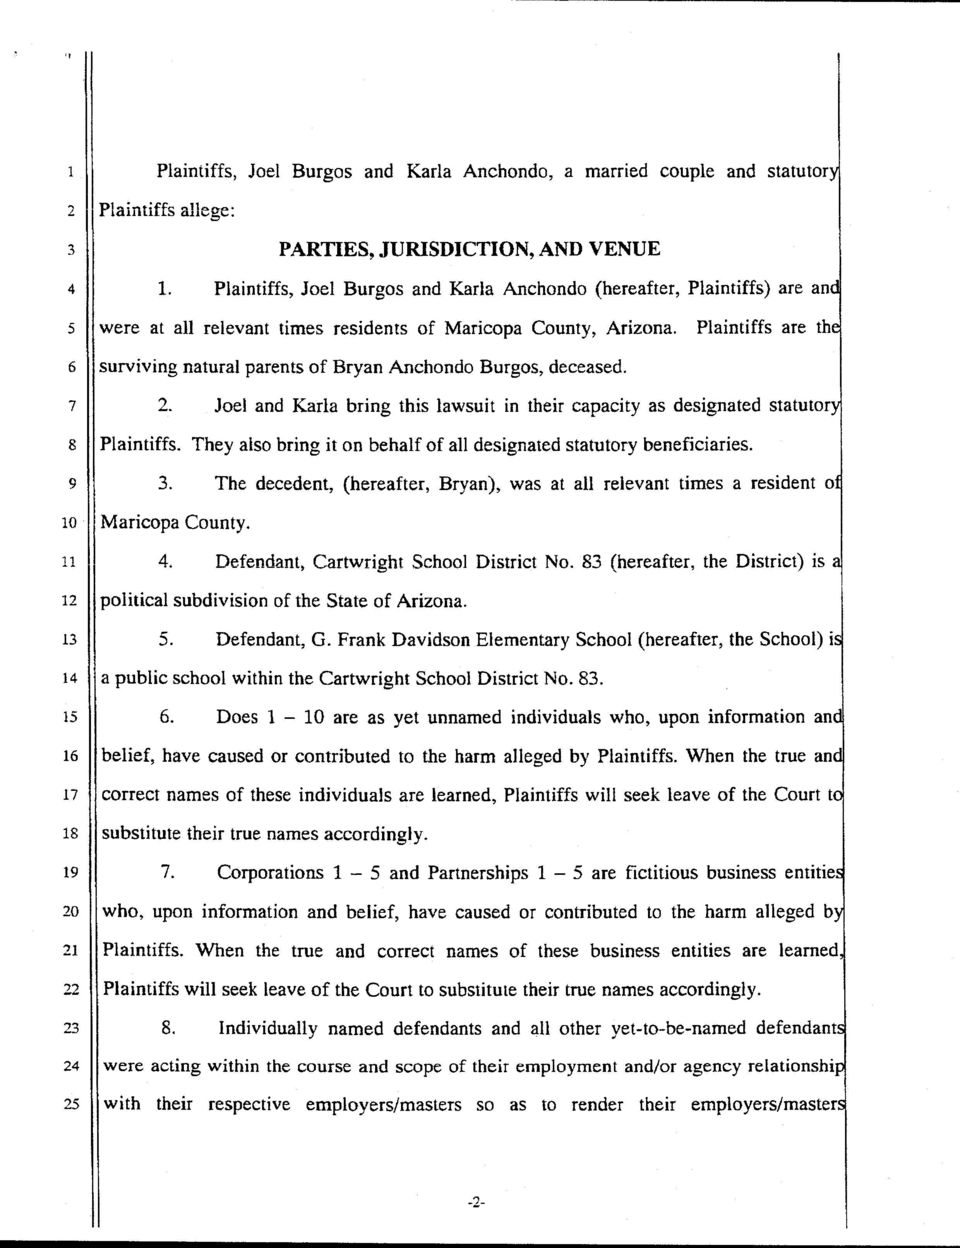 Plaintiffs are surviving natural parents of Bryan Anchondo Burgos, deceased. 2. Joel and Karla bring this lawsuit in their capacity as designated statuto tl 'J.2 IJ l 1 1 t7 1 zo 2l Plaintiffs.